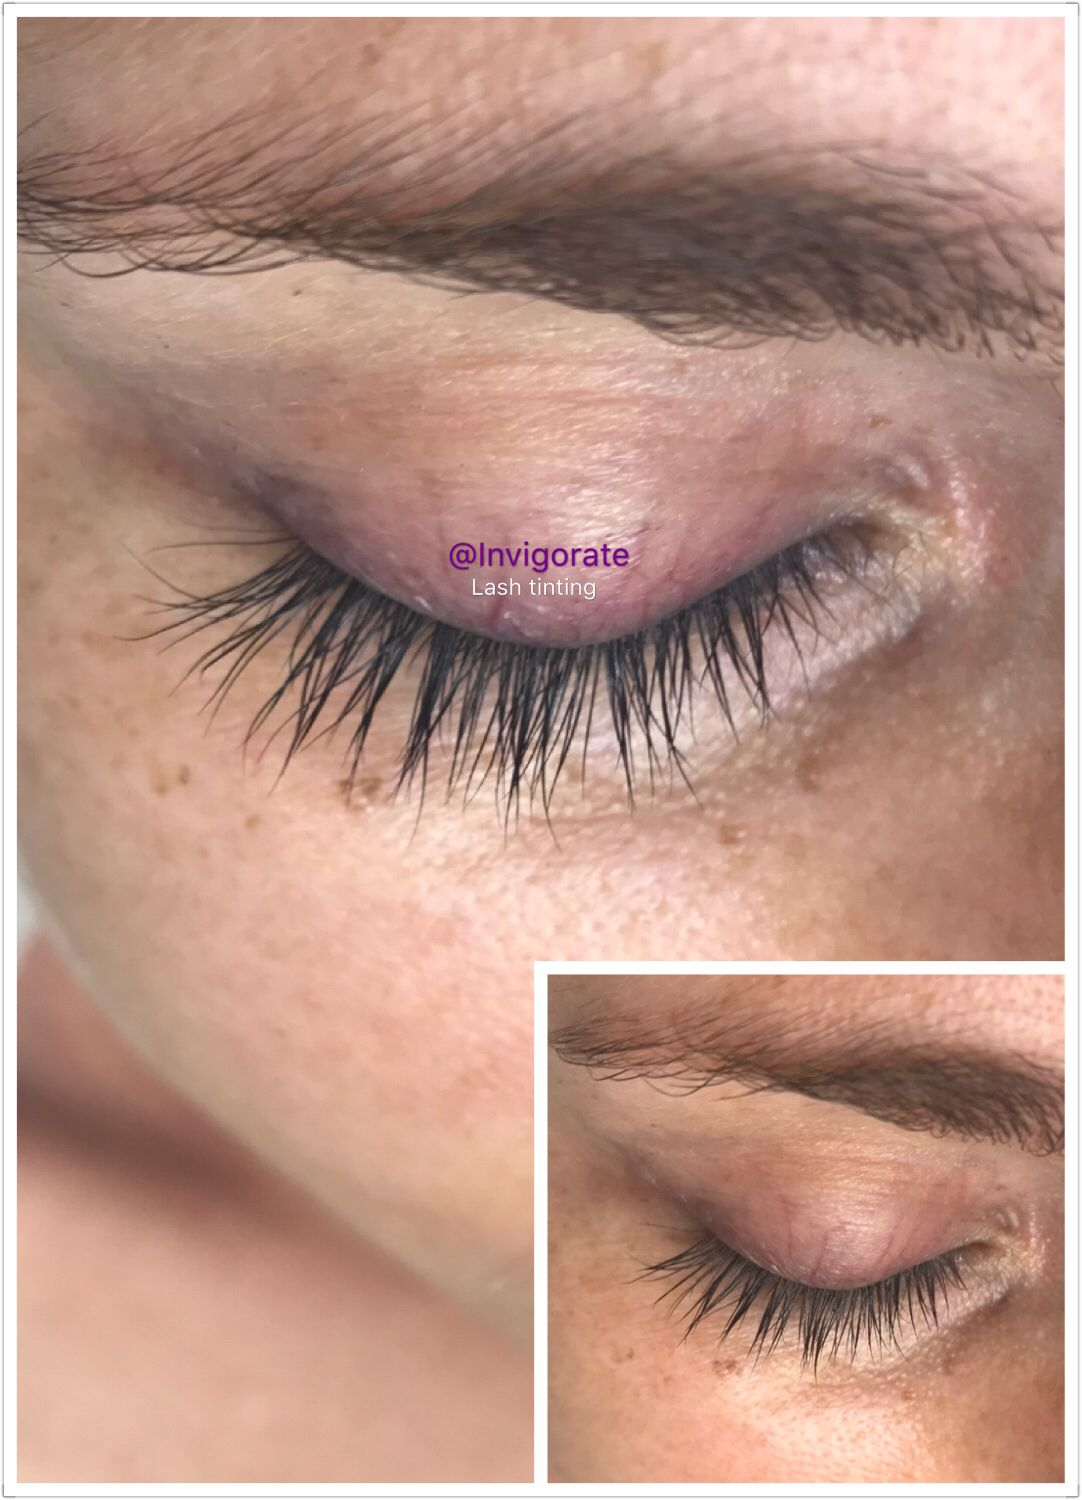 Just A Lash Tinting To Make These Beautiful Lashes Look Even Better